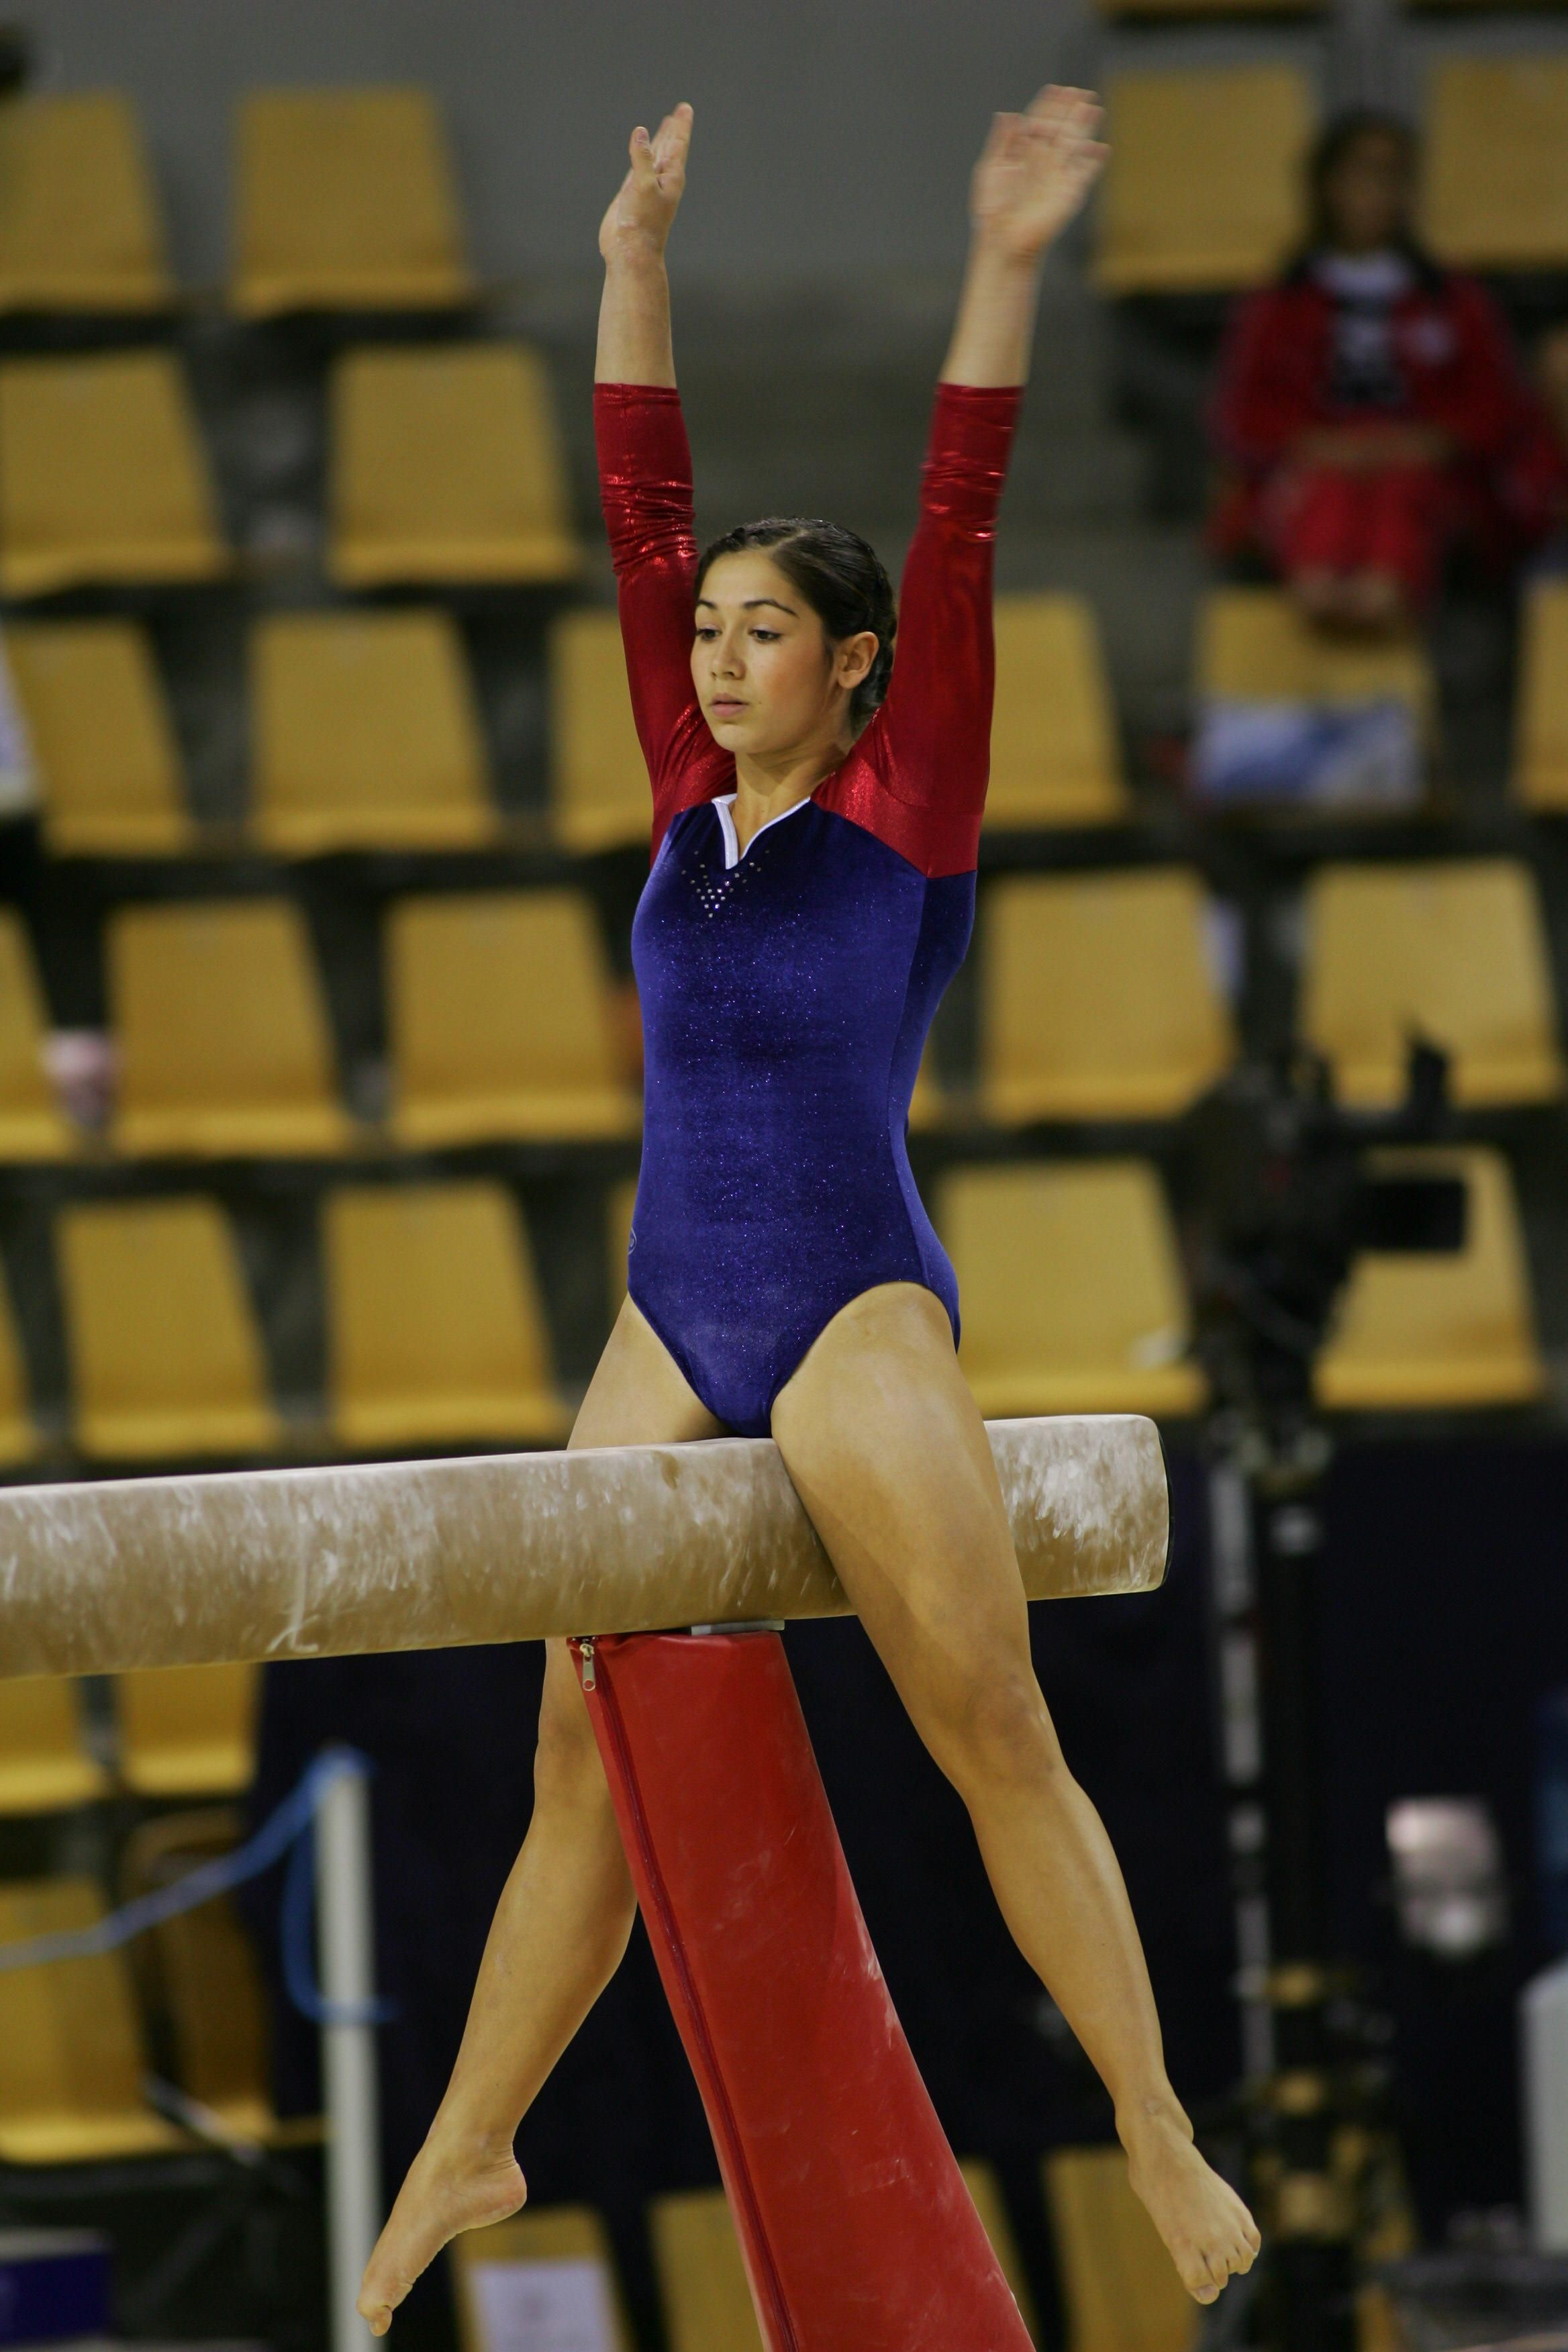 Norway Artistic Gymnast On The Beam During 2006 Gymnastics World Championship In Denmark Resolution 2336x3504